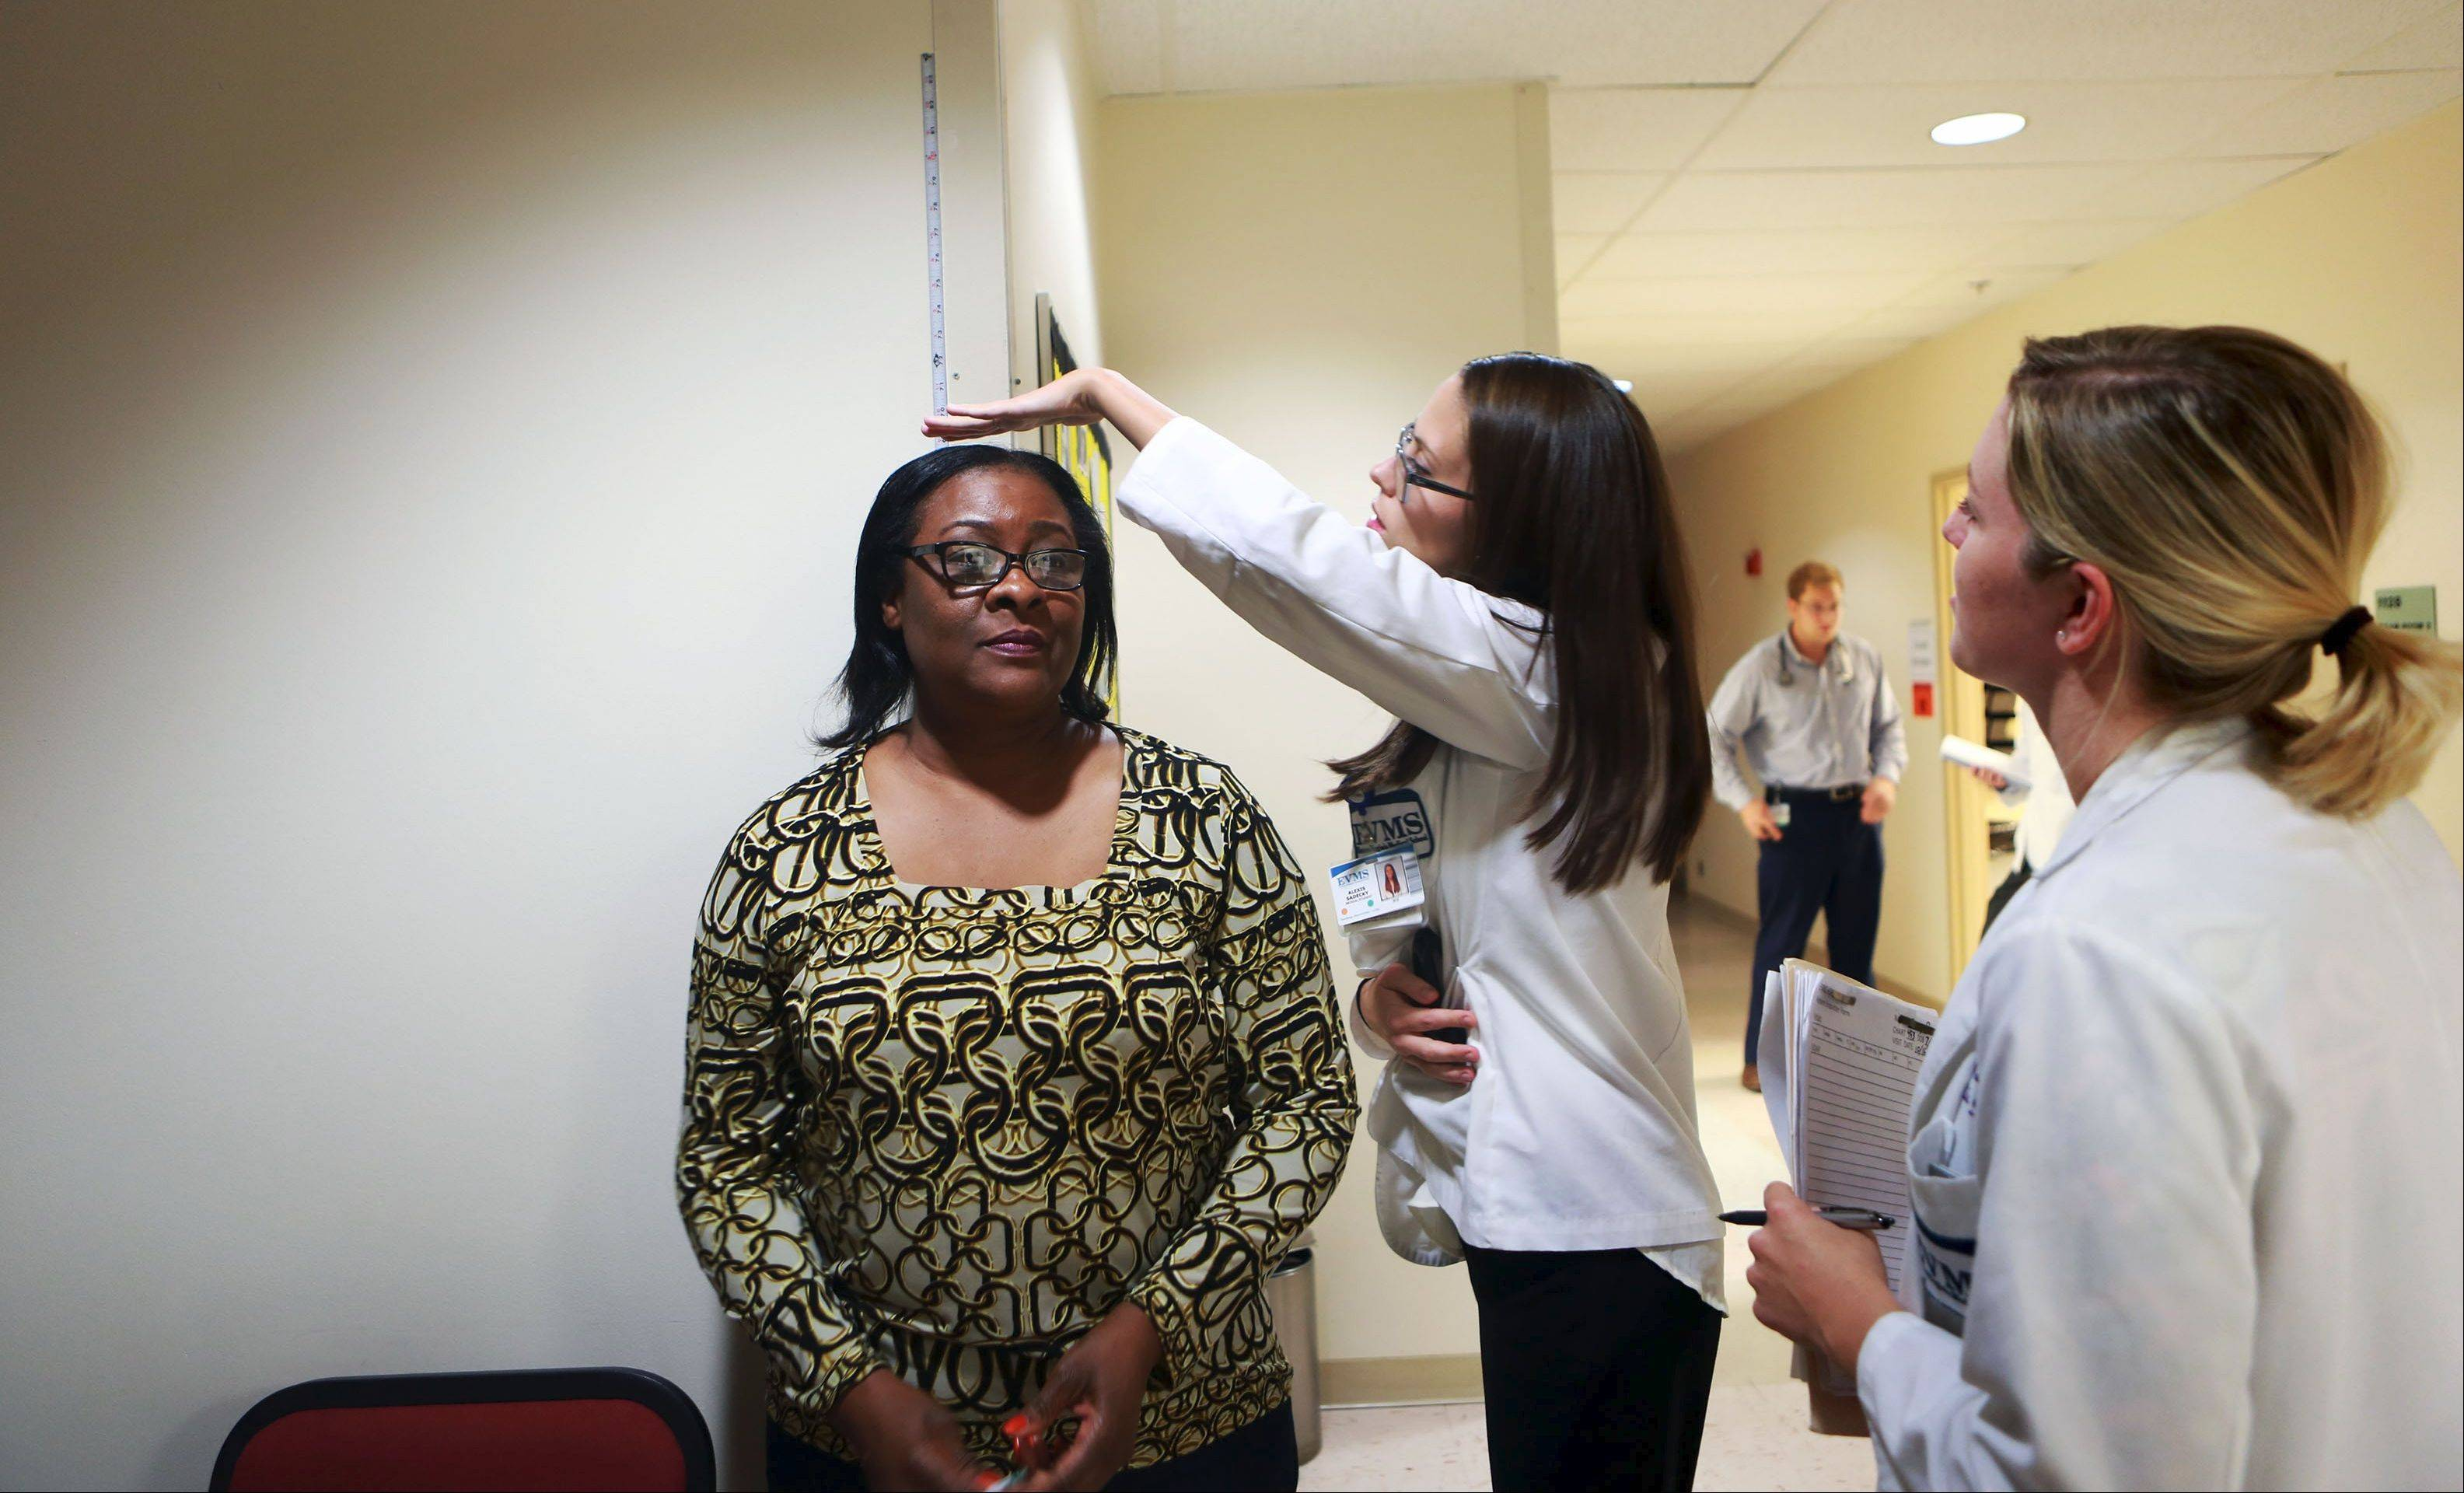 Second-year medical student Alexis Sadecky, center, gathers vitals on patient Donna Eure while Lauren Daugherty looks on at the HOPES women's clinic in Norfolk, Va., the only student-run clinic in Virginia.